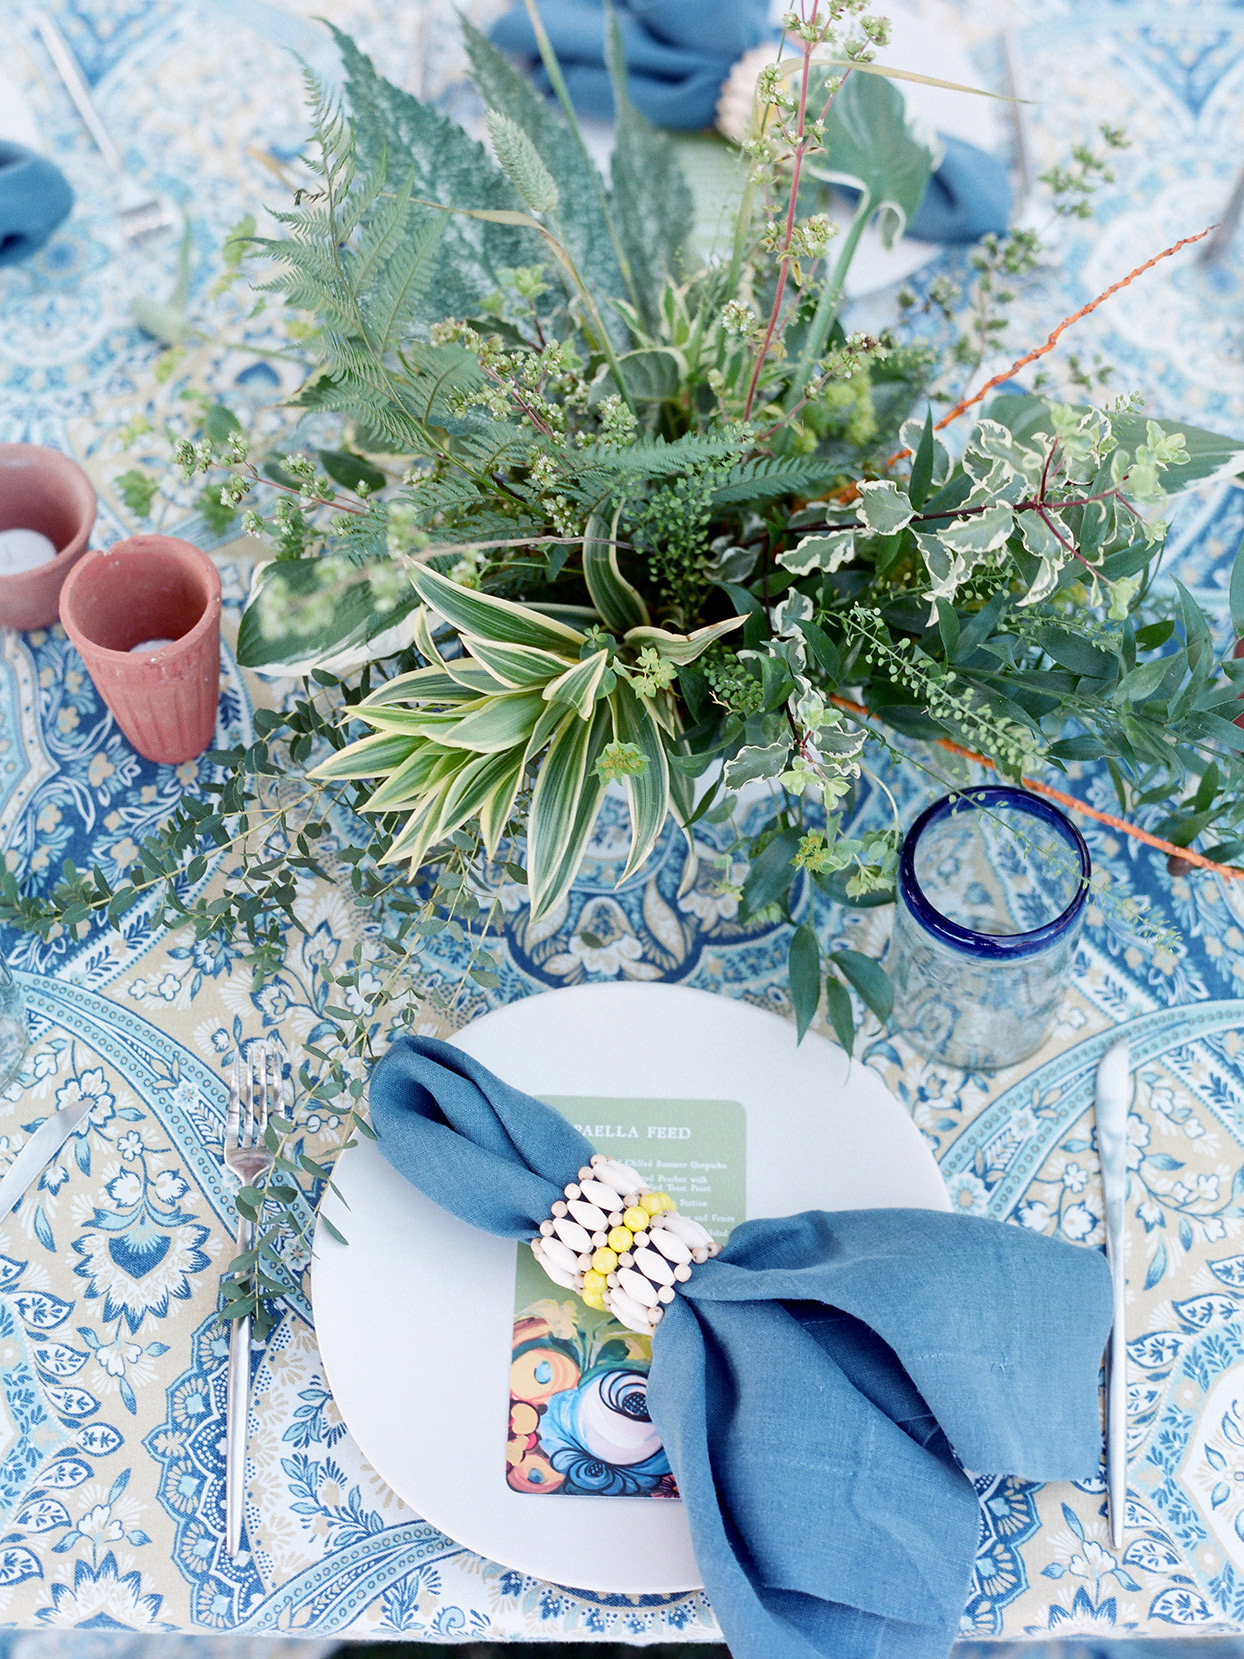 blue patterned table cloth with brunch setting